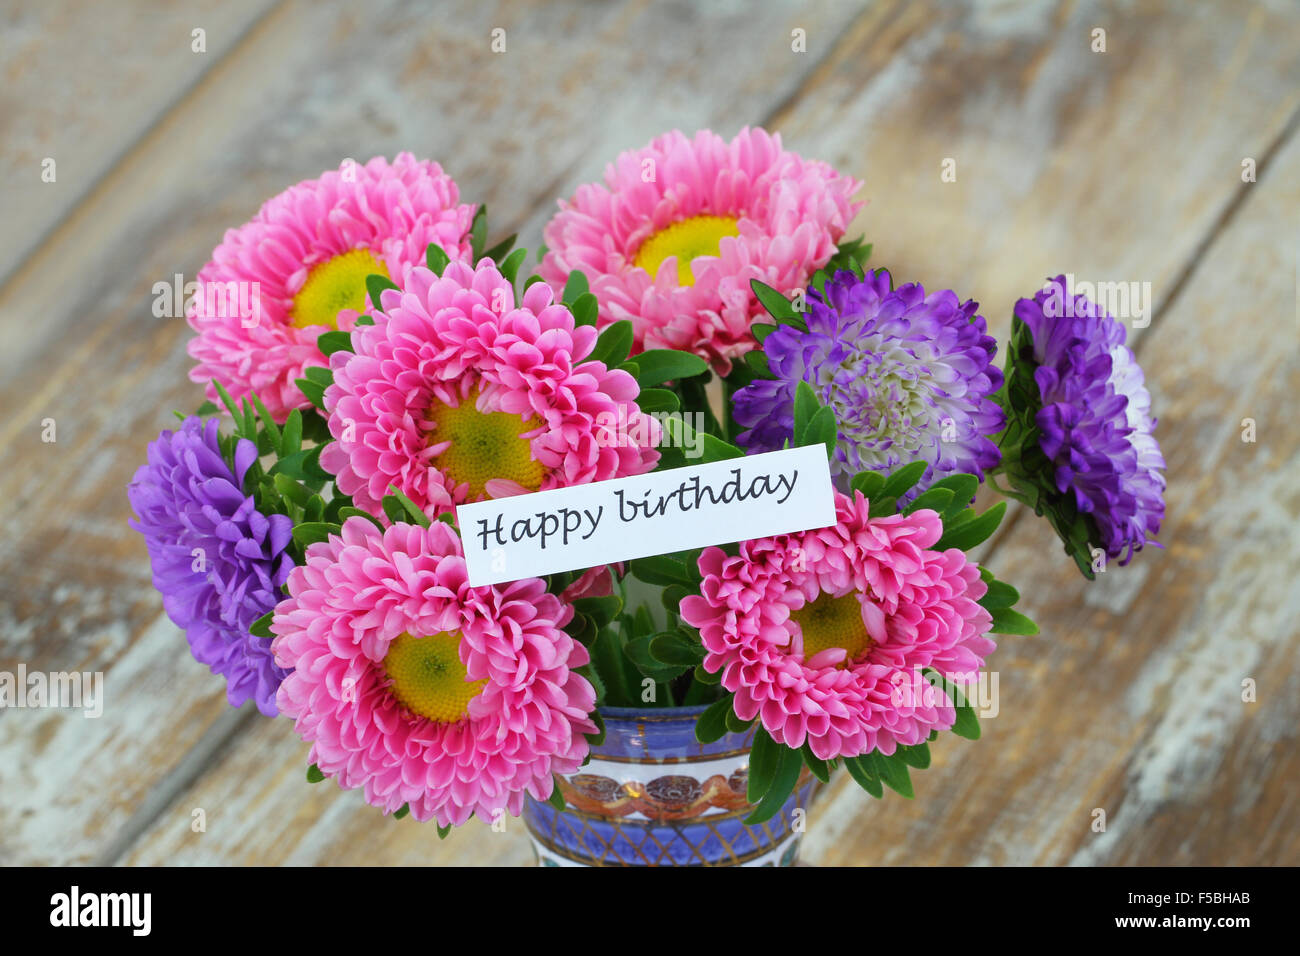 Happy birthday card colorful aster stock photos happy birthday happy birthday card with colorful aster flower bouquet on rustic wooden surface stock image izmirmasajfo